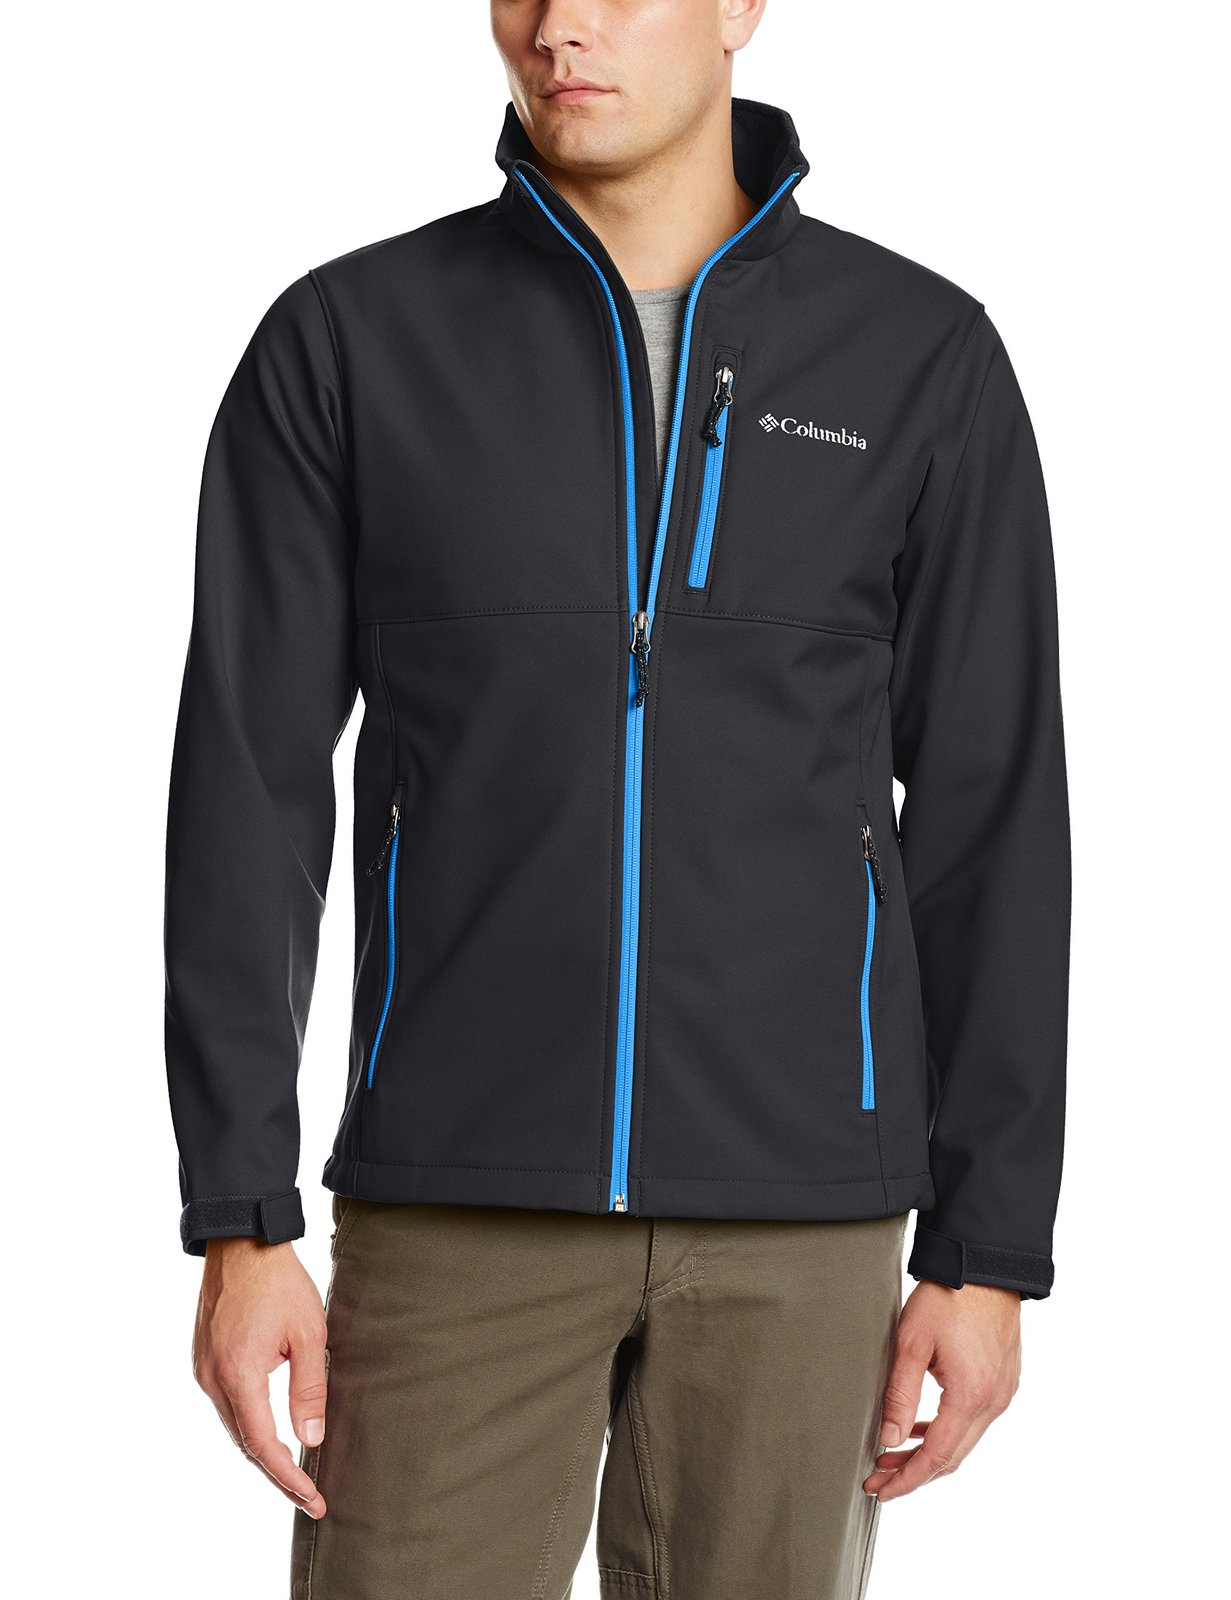 Columbia Men's Ascender Softshell Front-Zip Jacket, Black/Super Blue, Small